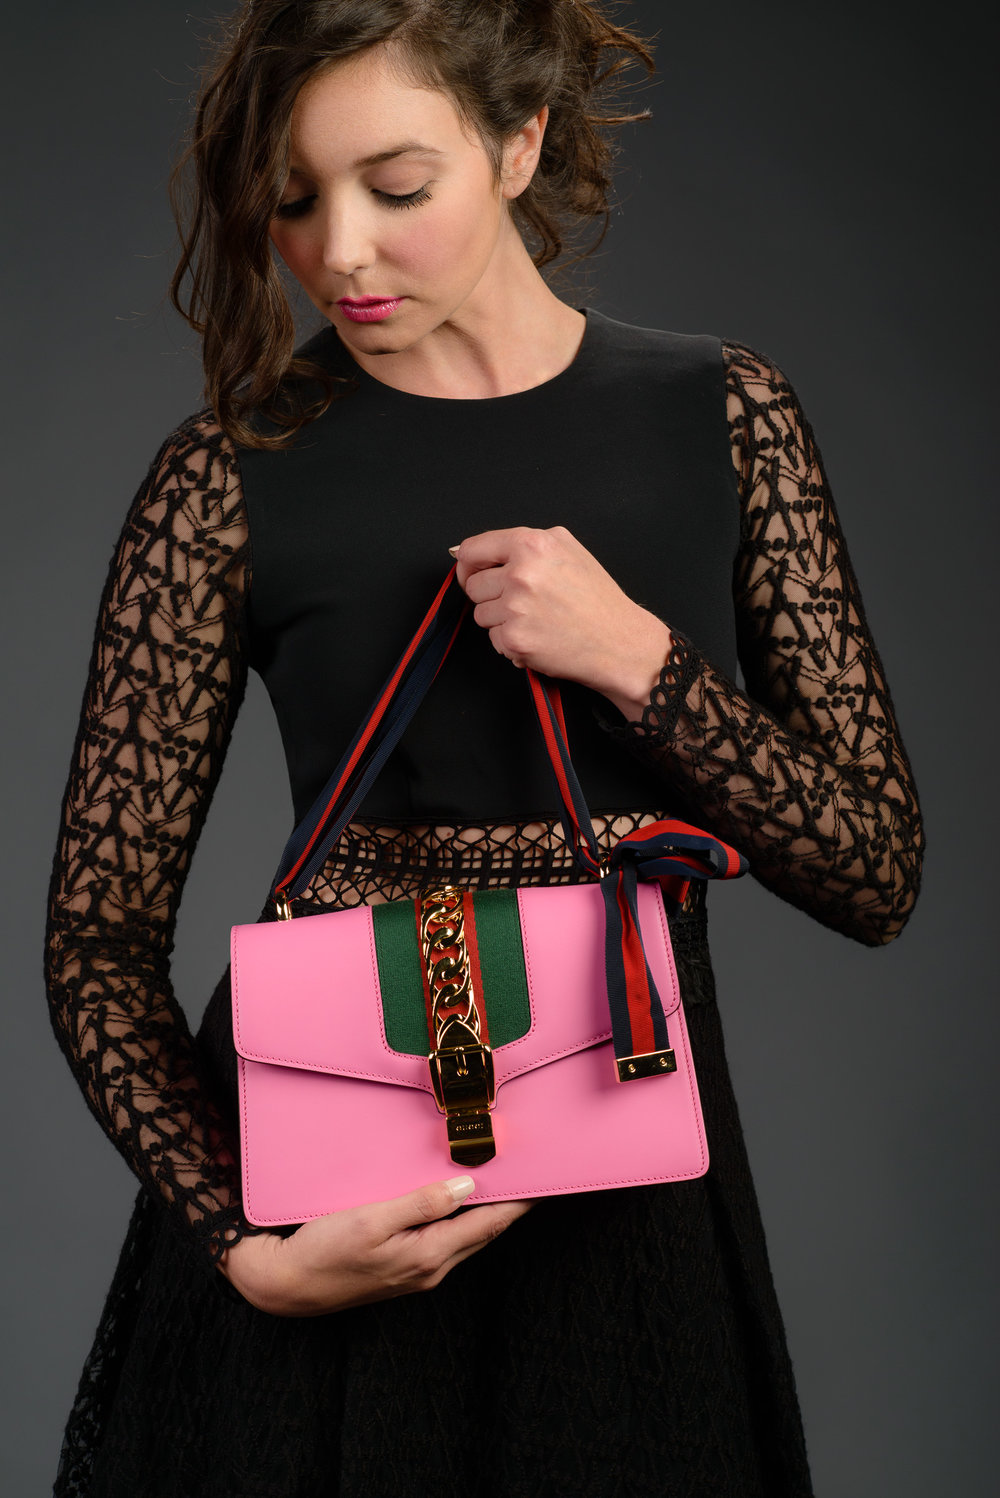 fashion-portrait-black-dress-pink-gucci-purse-bag.jpg